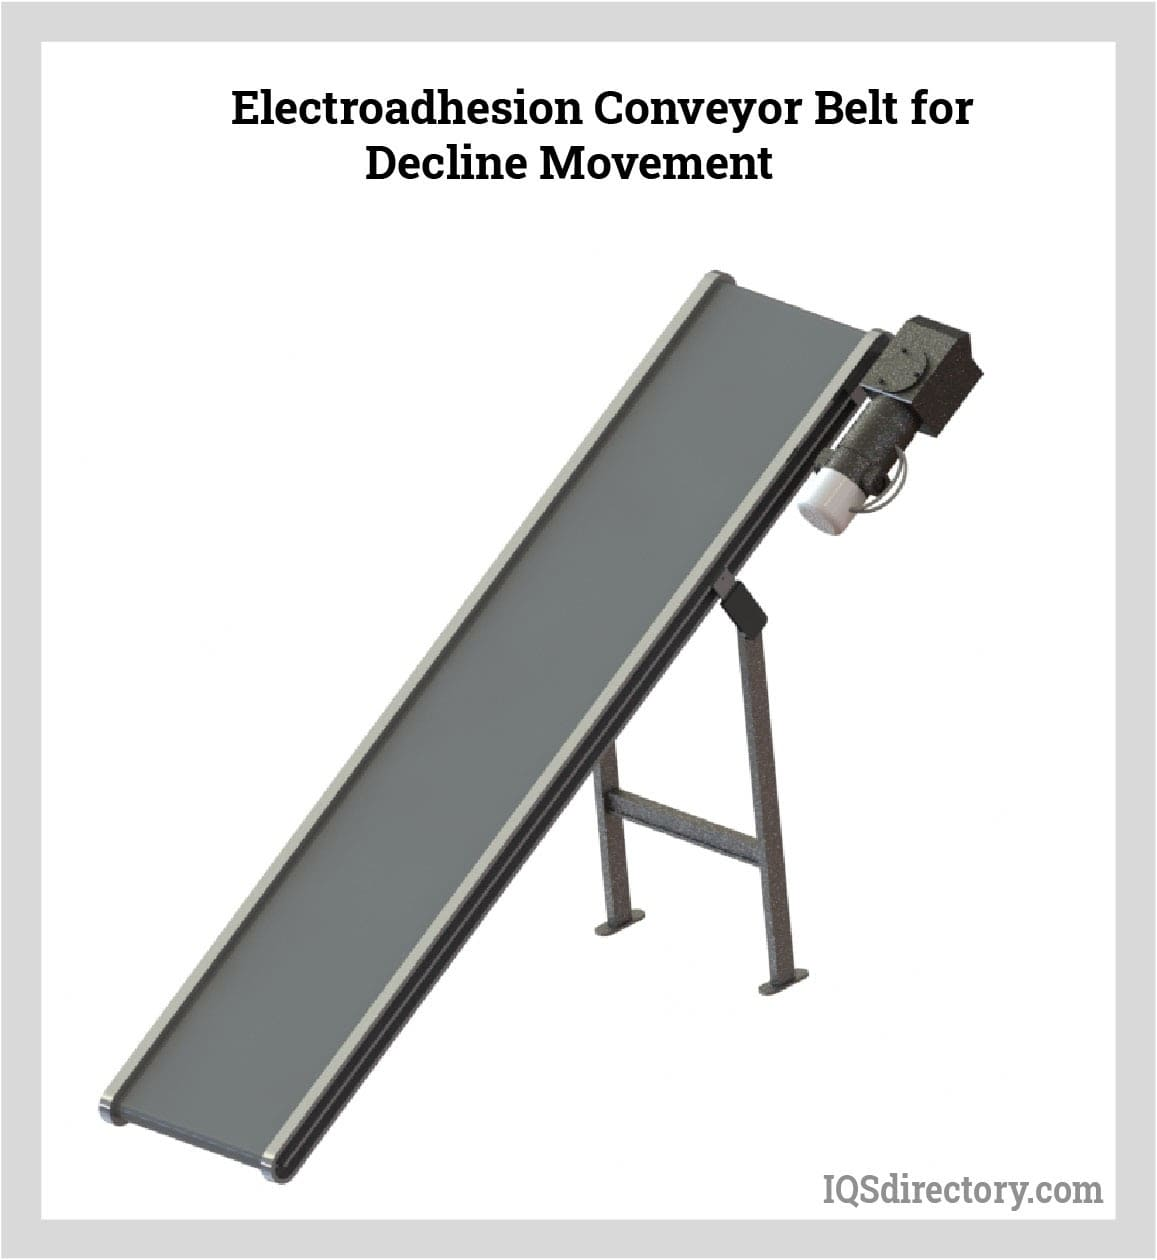 Electroadhesion Conveyor Belt for Decline Movement